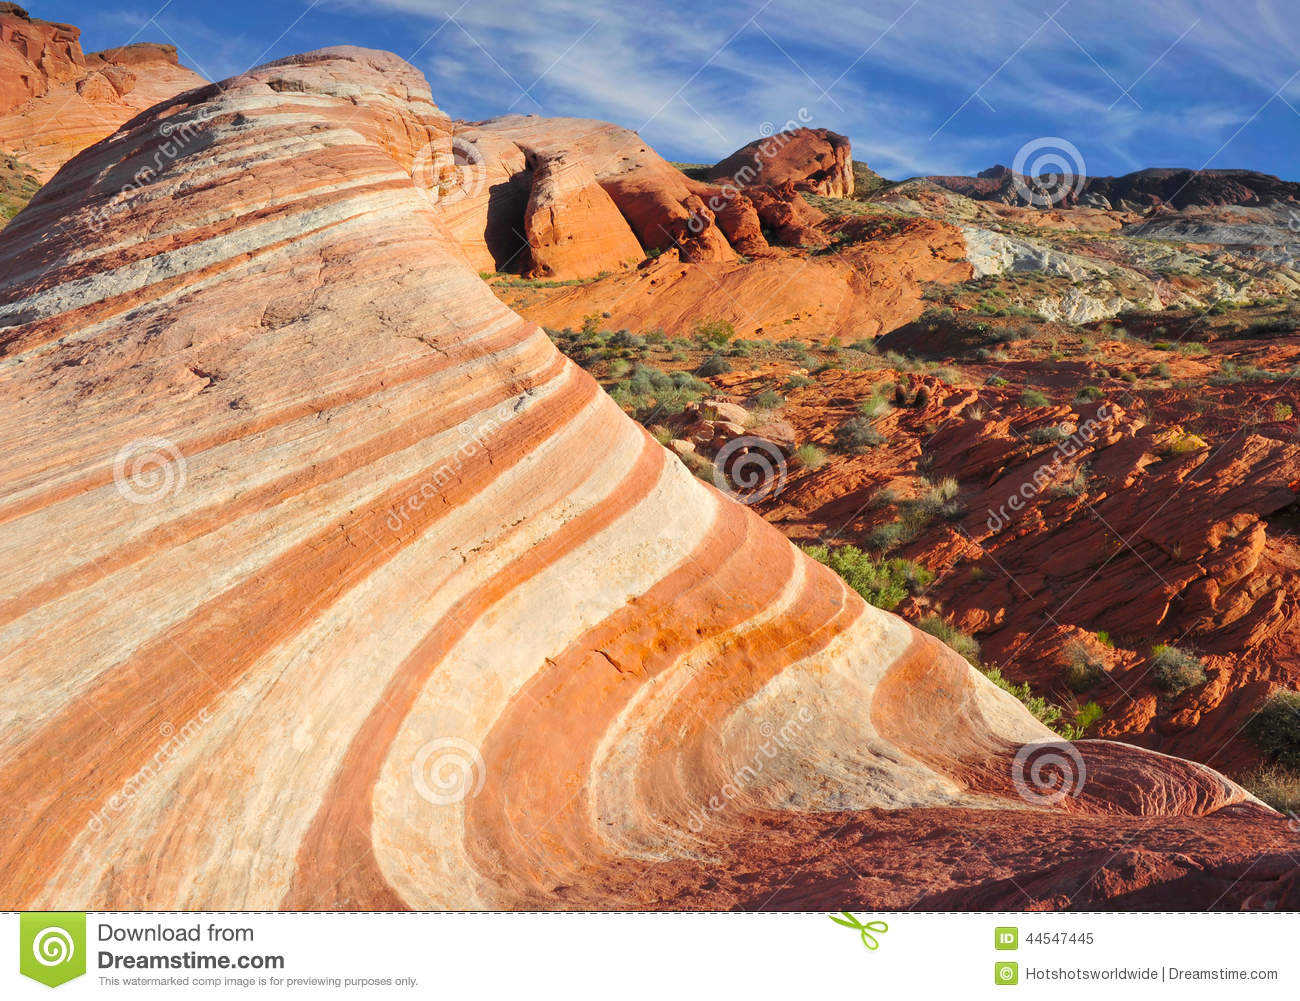 Red Rock Canyon clipart #10, Download drawings